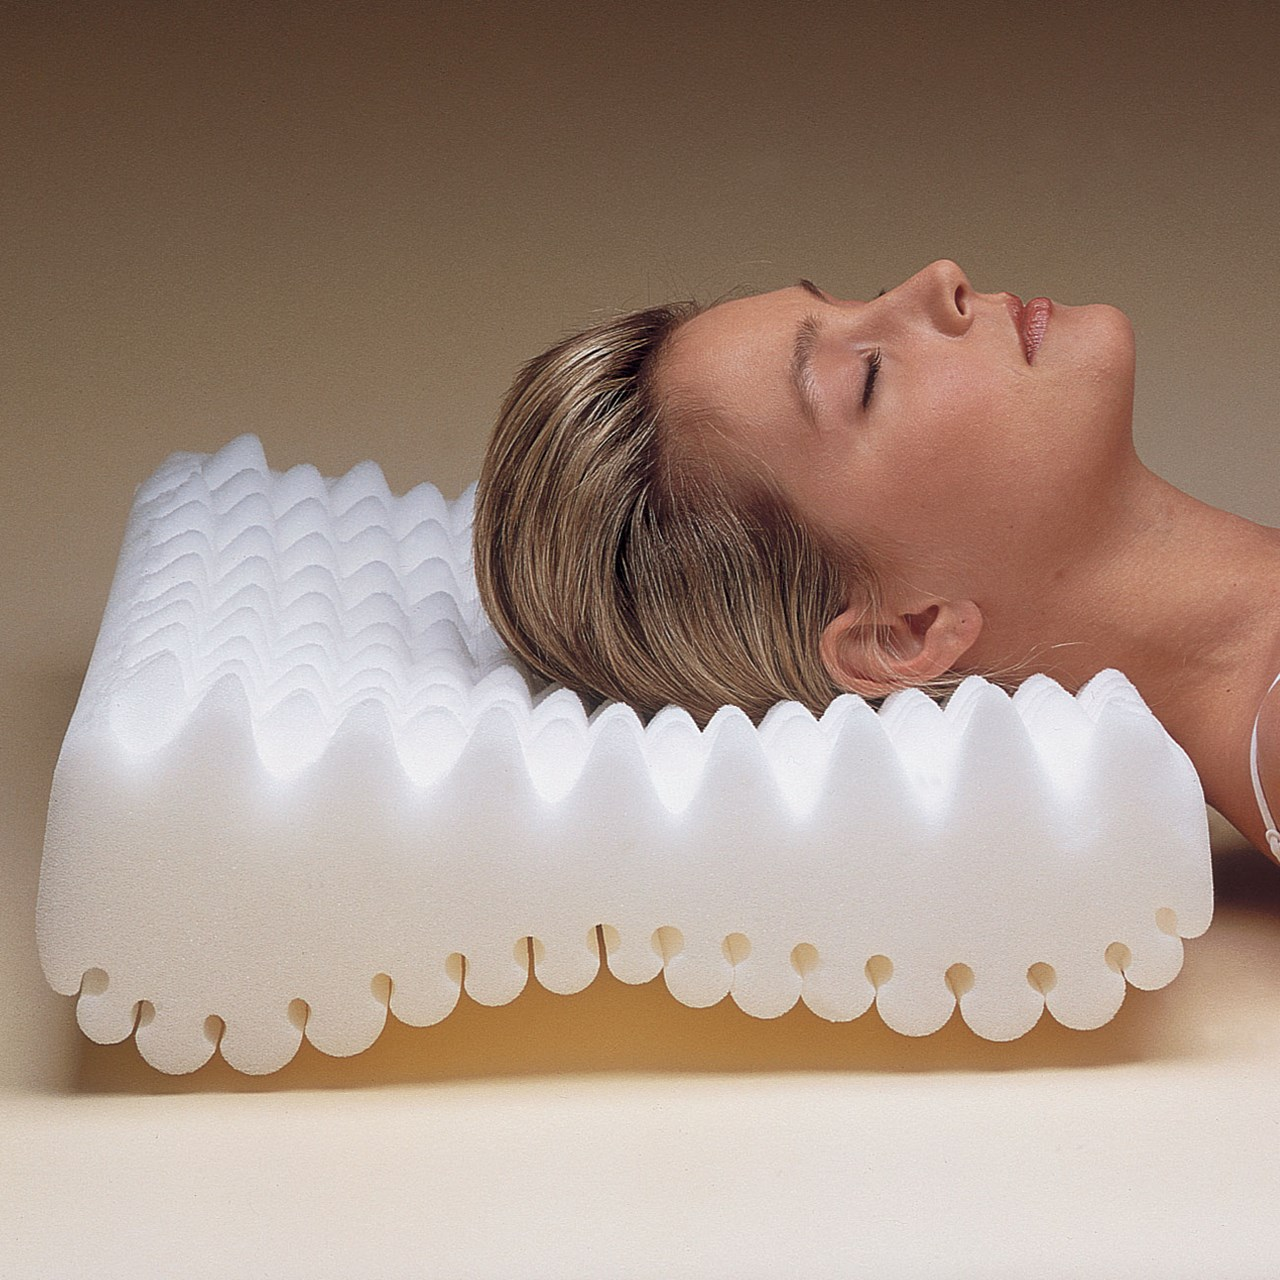 maxiaids obusforme neck 4 in 1 cervical pillow. Black Bedroom Furniture Sets. Home Design Ideas